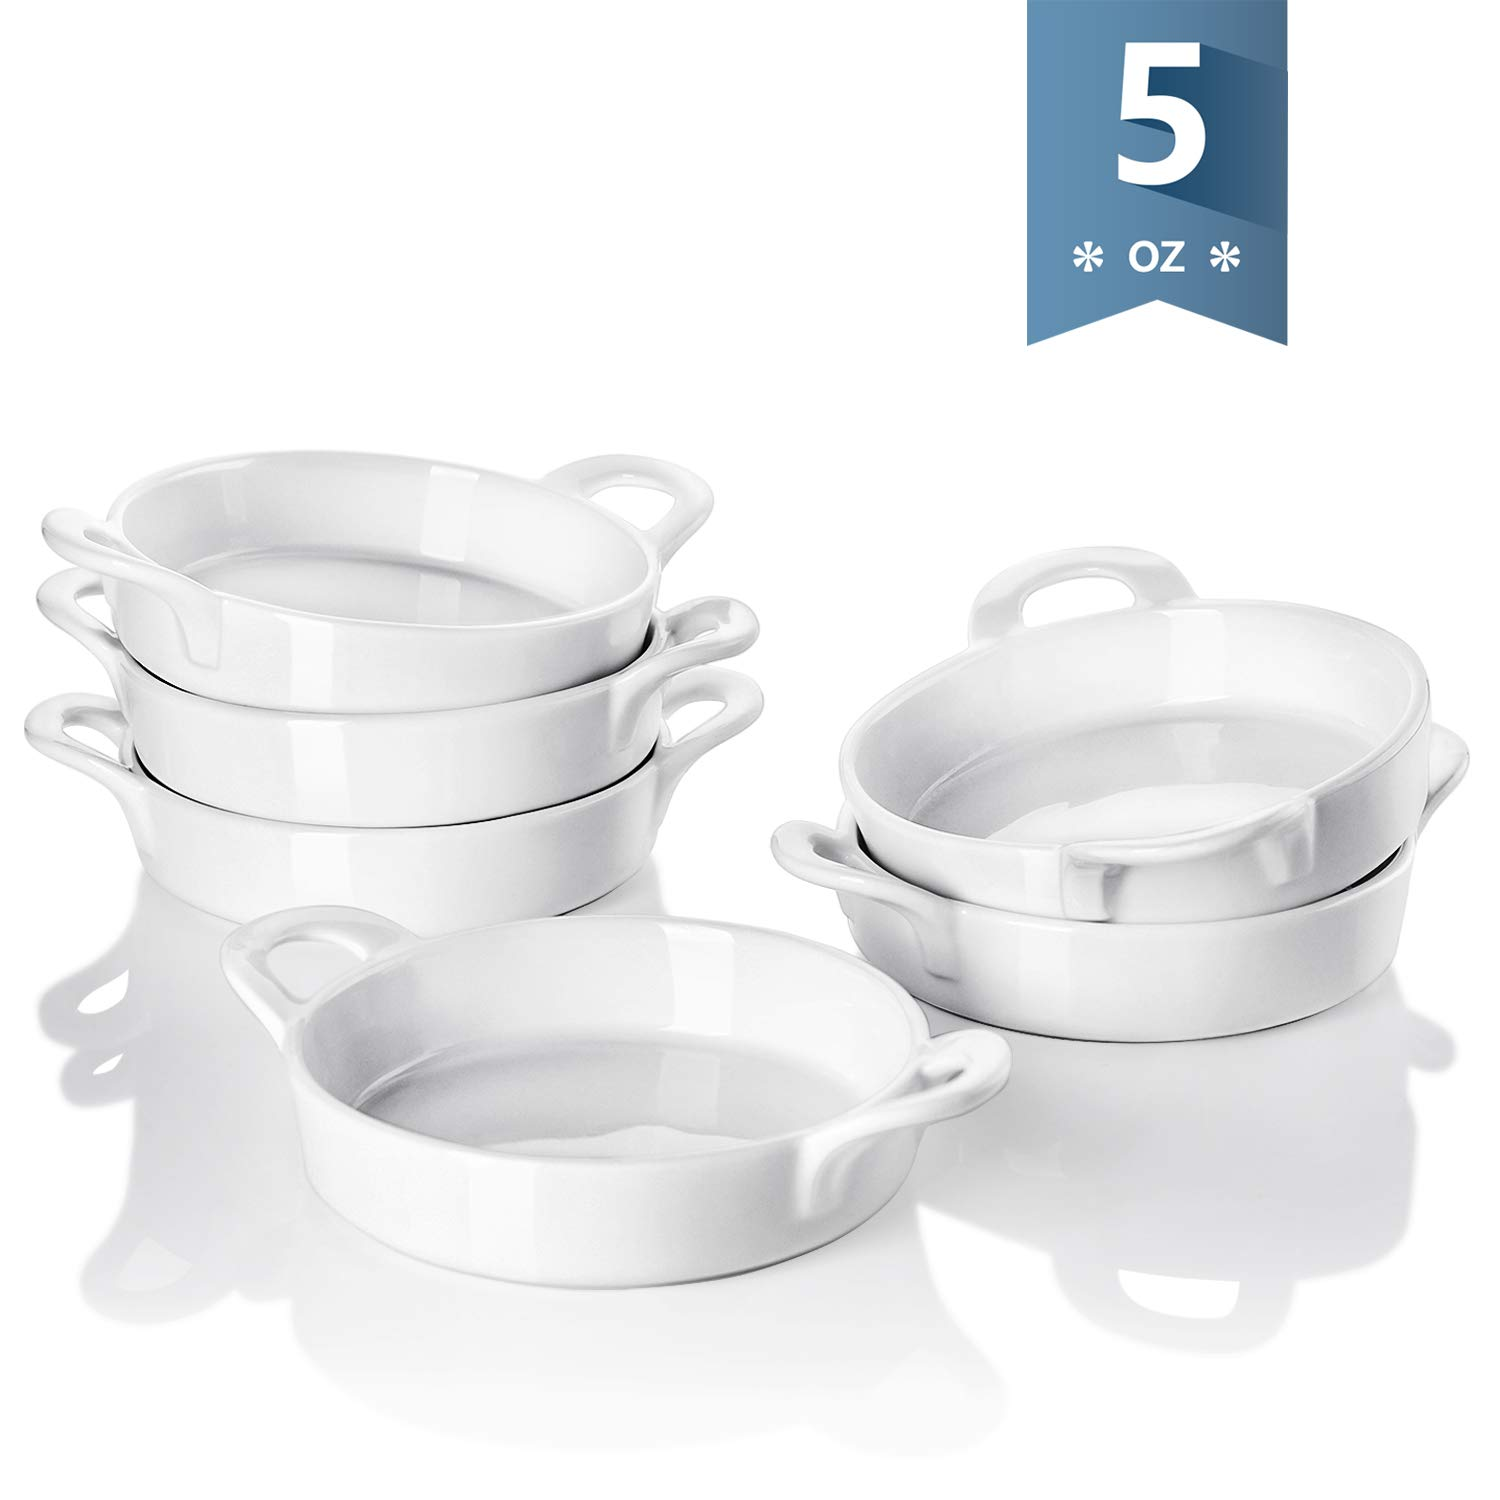 Sweese 5116 Porcelain Ramekins, 5 oz Ramekins for Baking, Round Creme Brulee Dish with Double Handle-Set of 6, White